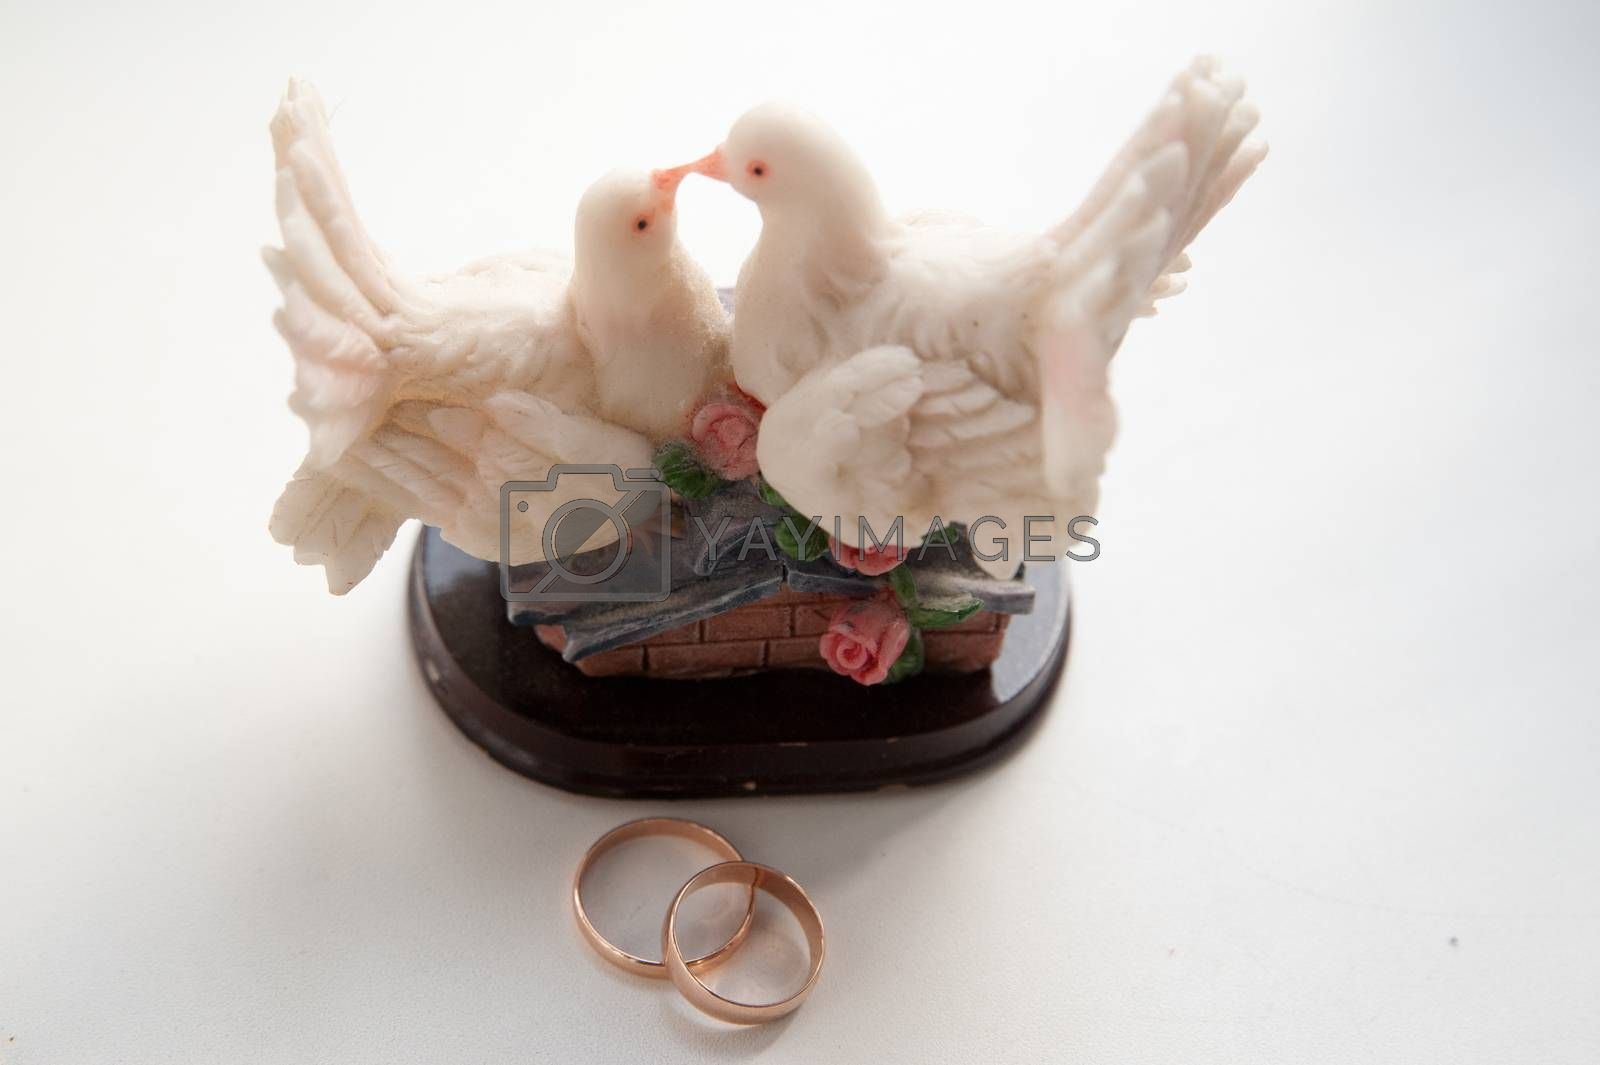 Two beautiful wedding rings and a statue of white doves on the wedding day